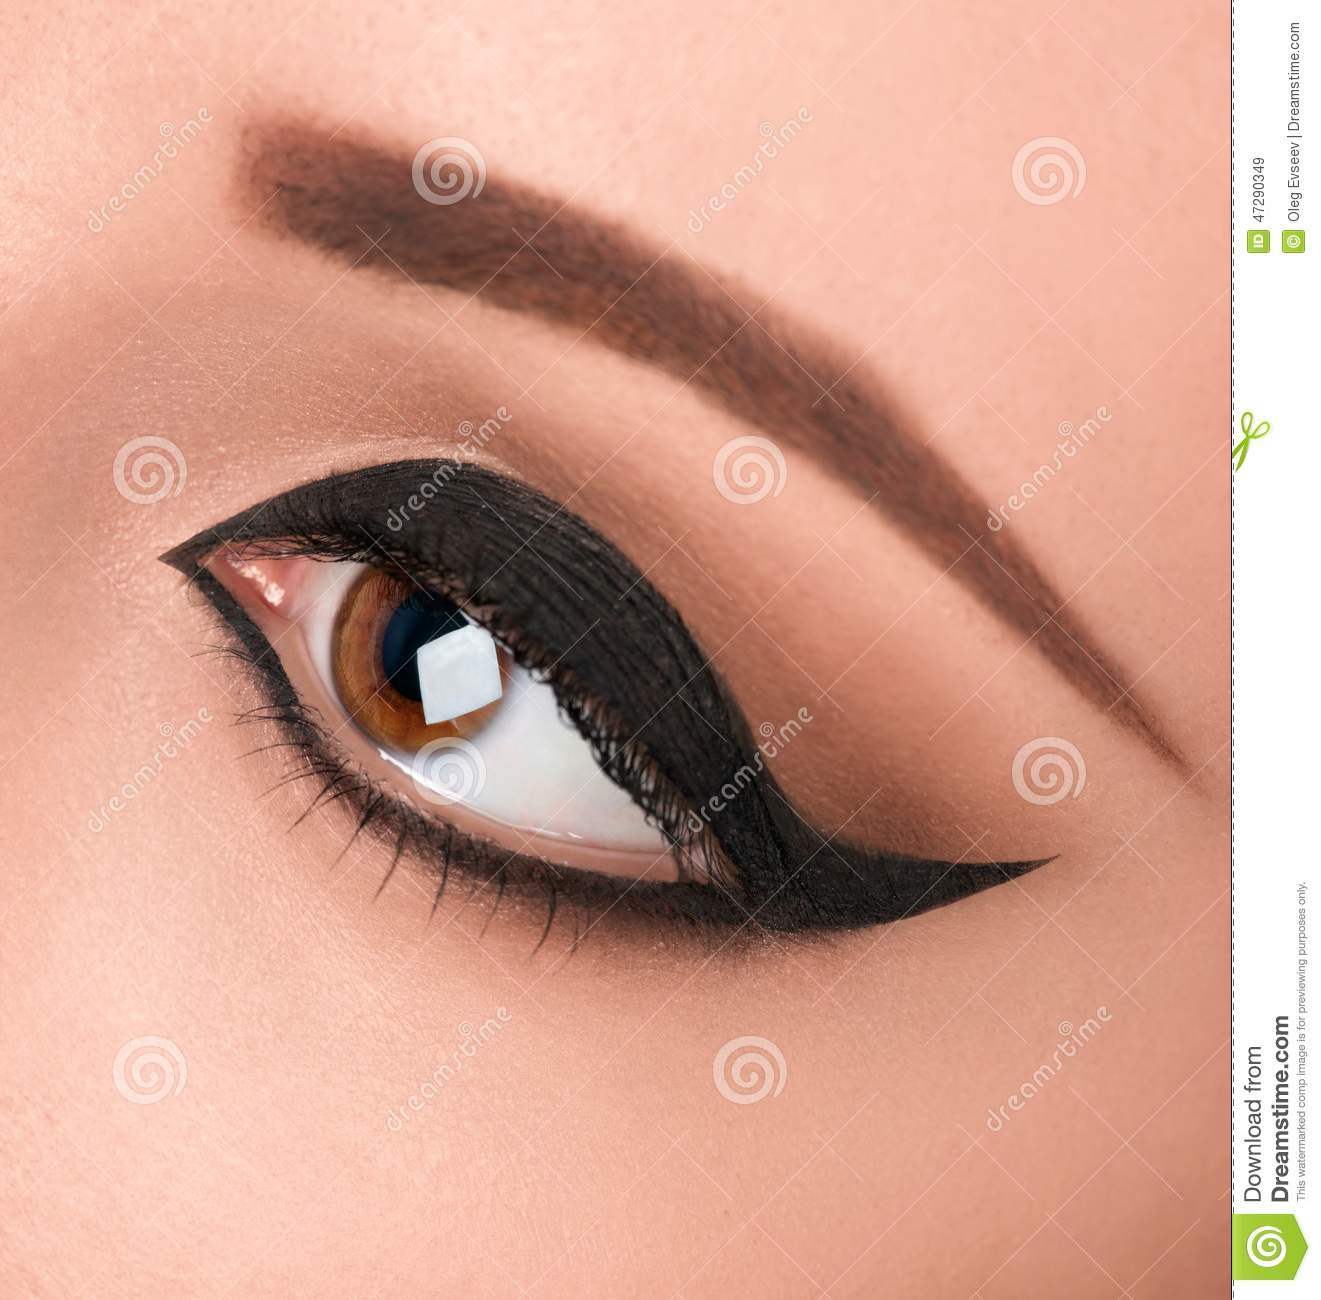 Glamour Black Eye Make Up With Wide Arrow Stock Image Image Of